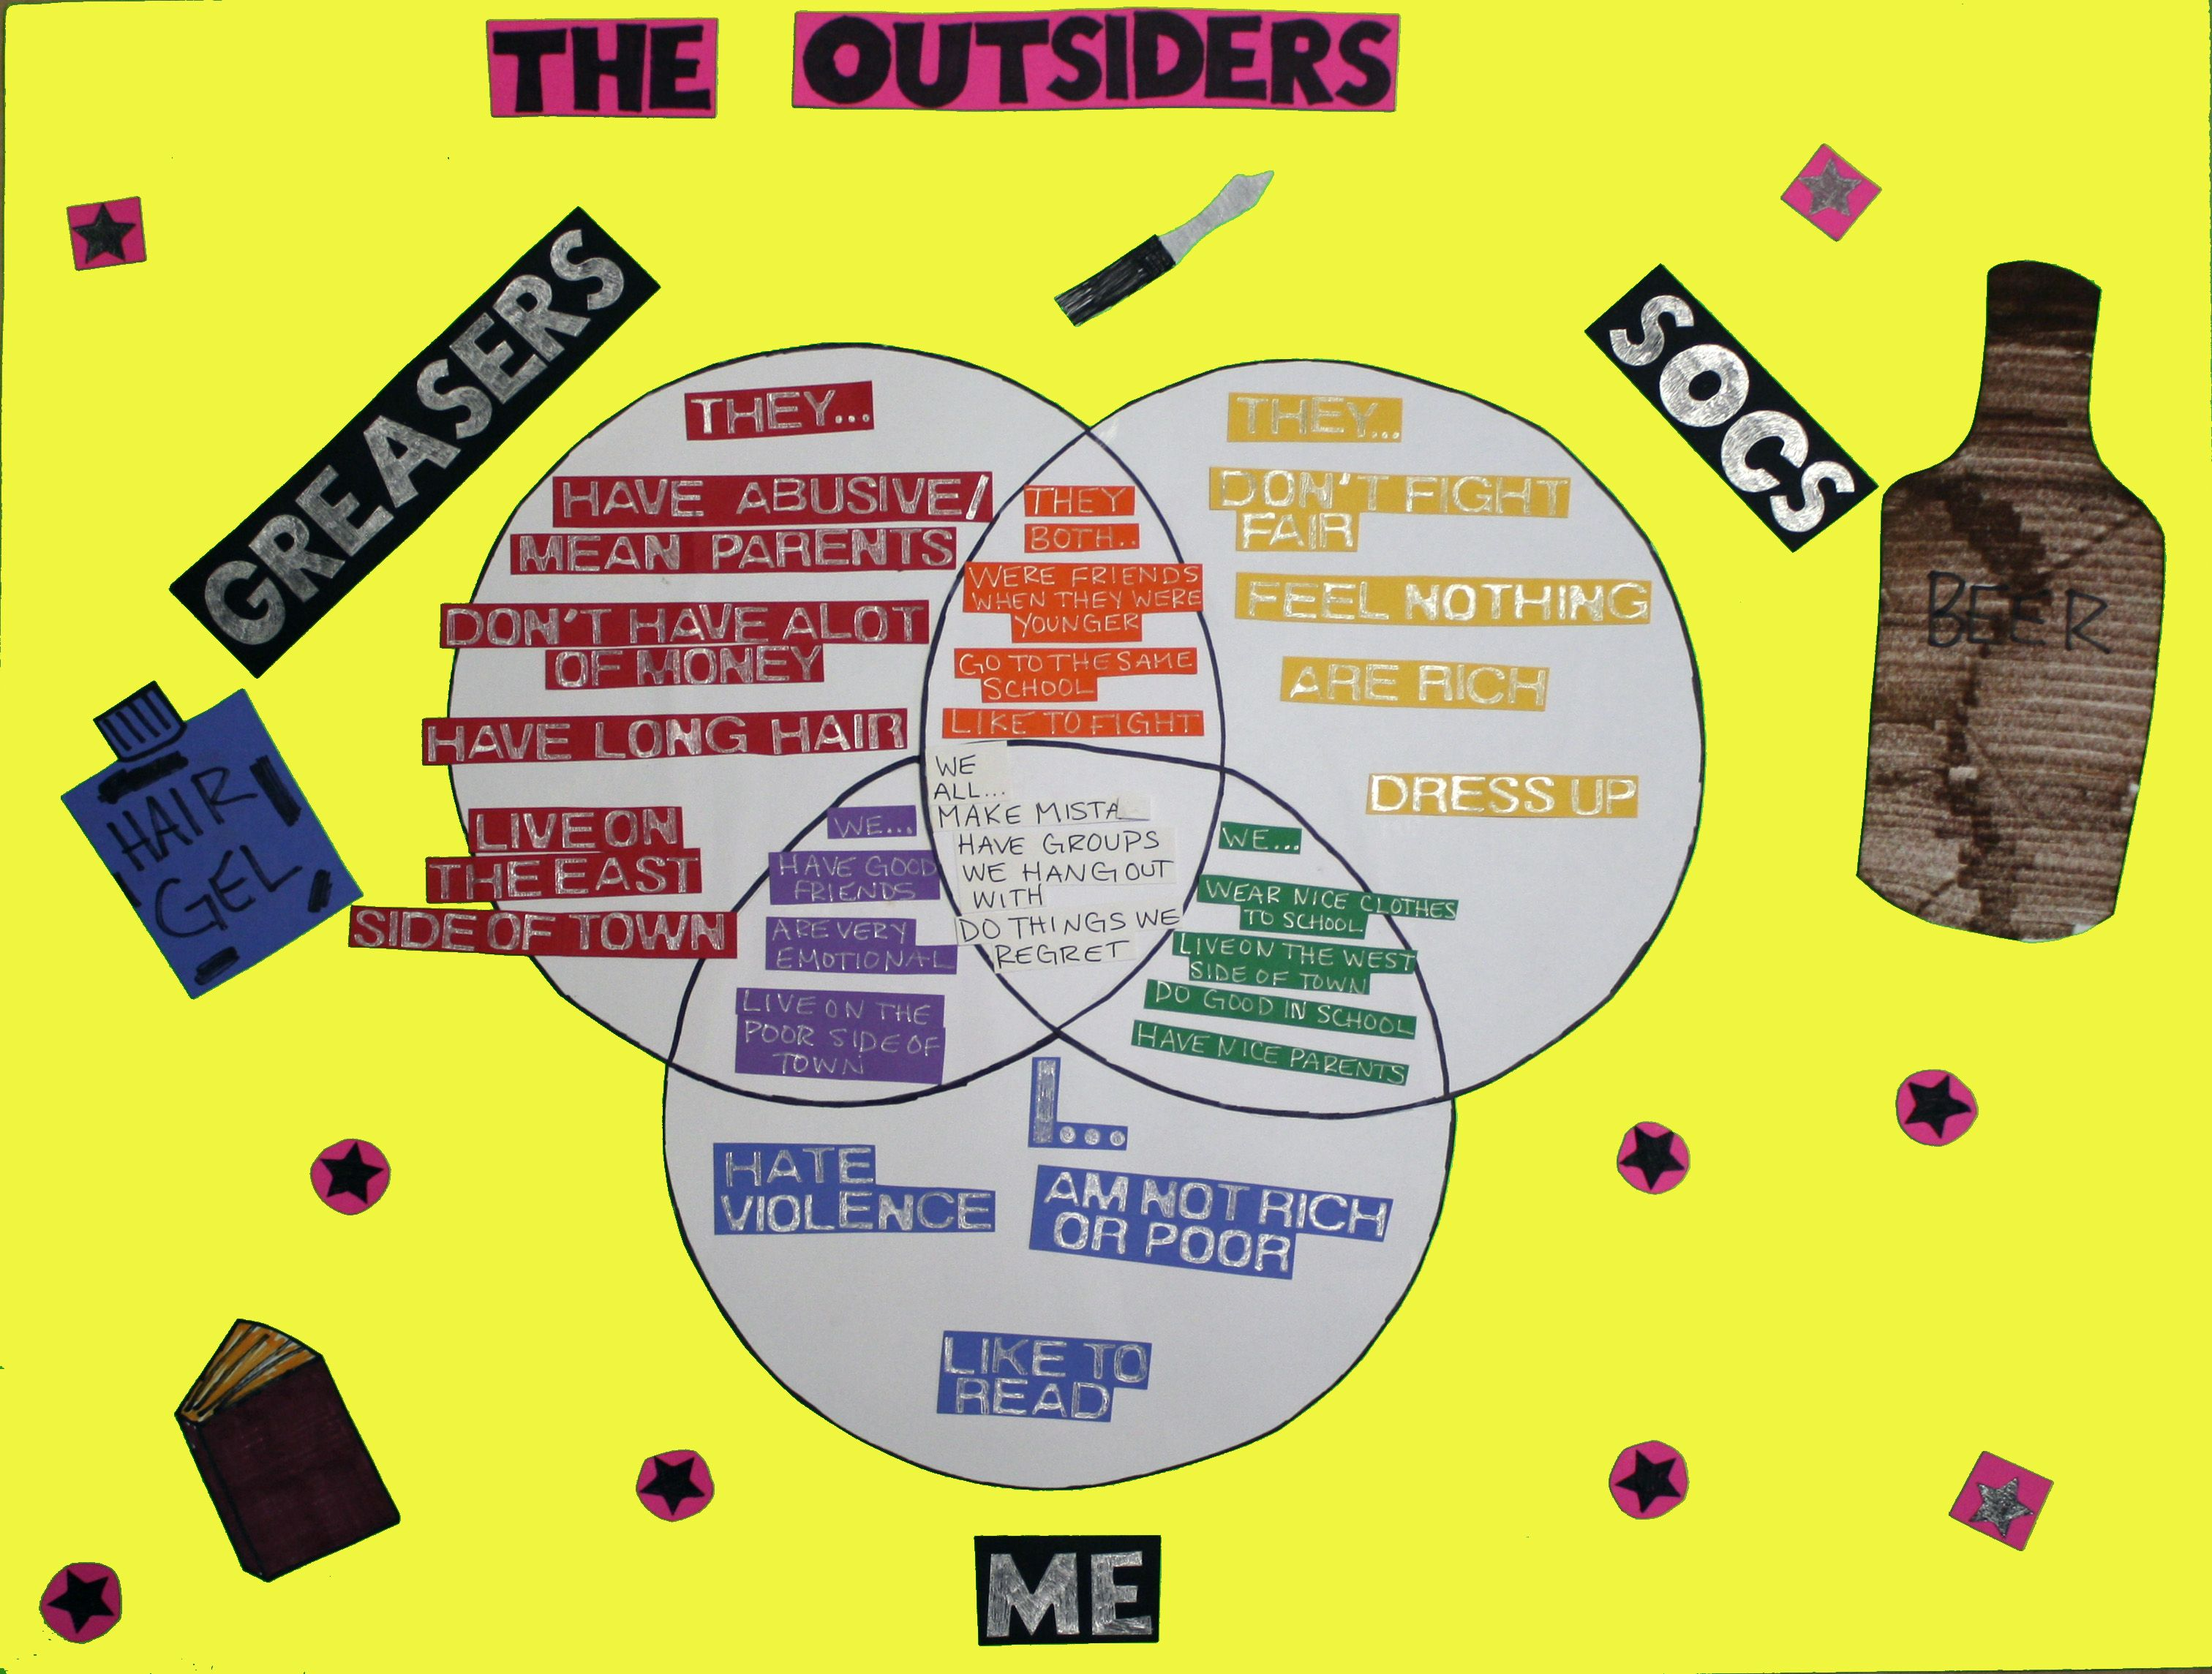 The Outsiders By S E Hinton Final Project Compare And